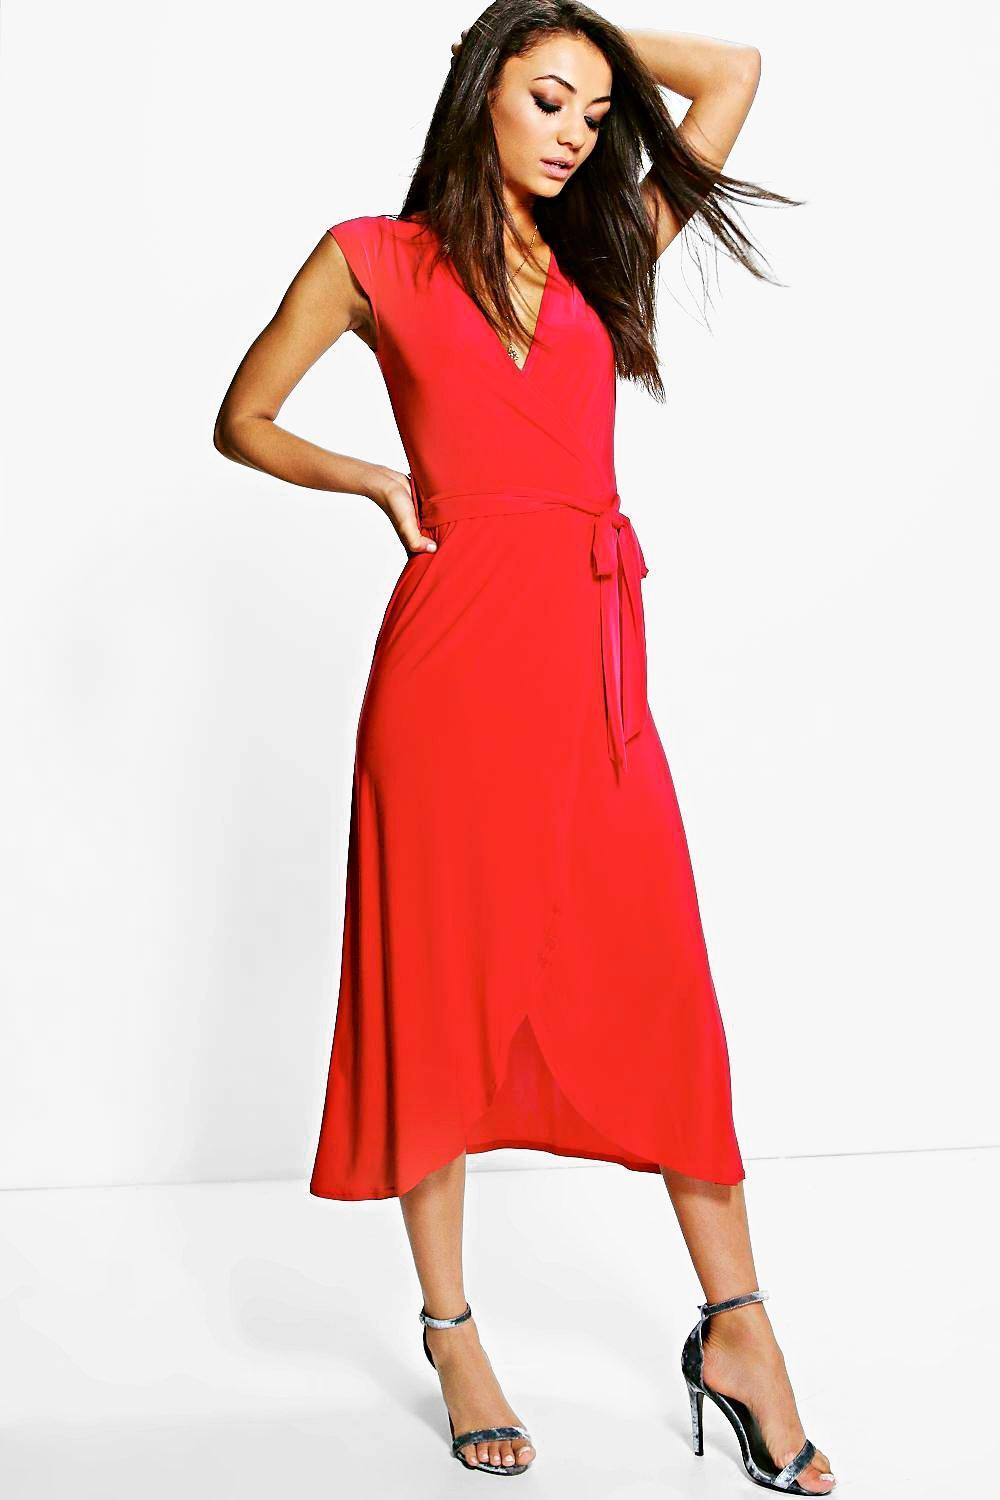 Shamira Slinky Wrap And Tie Midaxi Dress Red - style: faux wrap/wrap; length: calf length; neckline: v-neck; sleeve style: capped; pattern: plain; waist detail: belted waist/tie at waist/drawstring; predominant colour: true red; occasions: evening; fit: body skimming; fibres: polyester/polyamide - 100%; sleeve length: short sleeve; pattern type: fabric; texture group: jersey - stretchy/drapey; season: a/w 2016; wardrobe: event